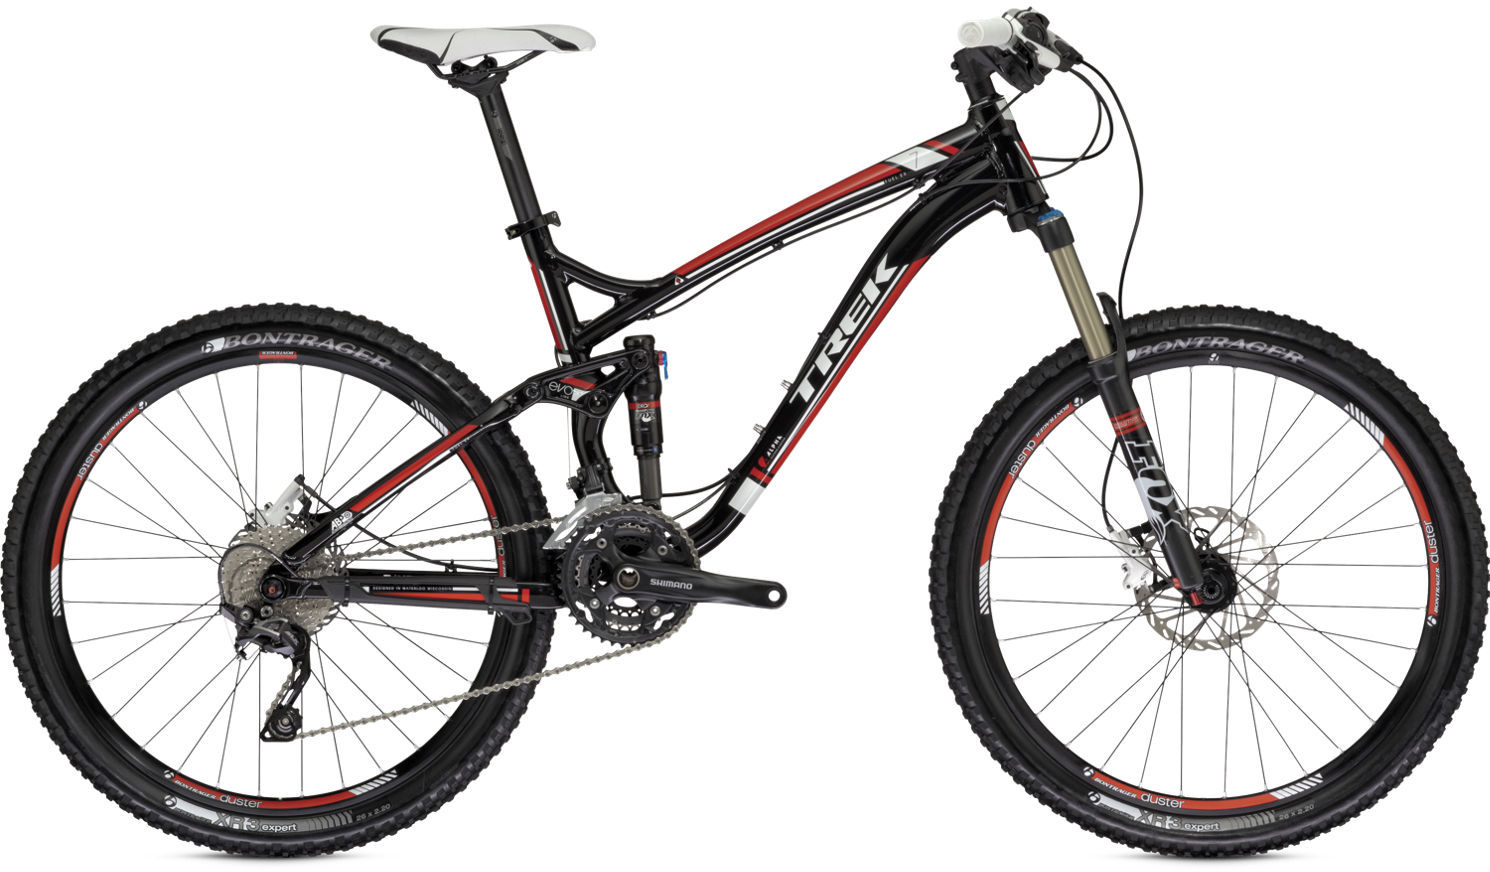 0c3f18f50c0 Trek Fuel EX 7 2013 review - The Bike List